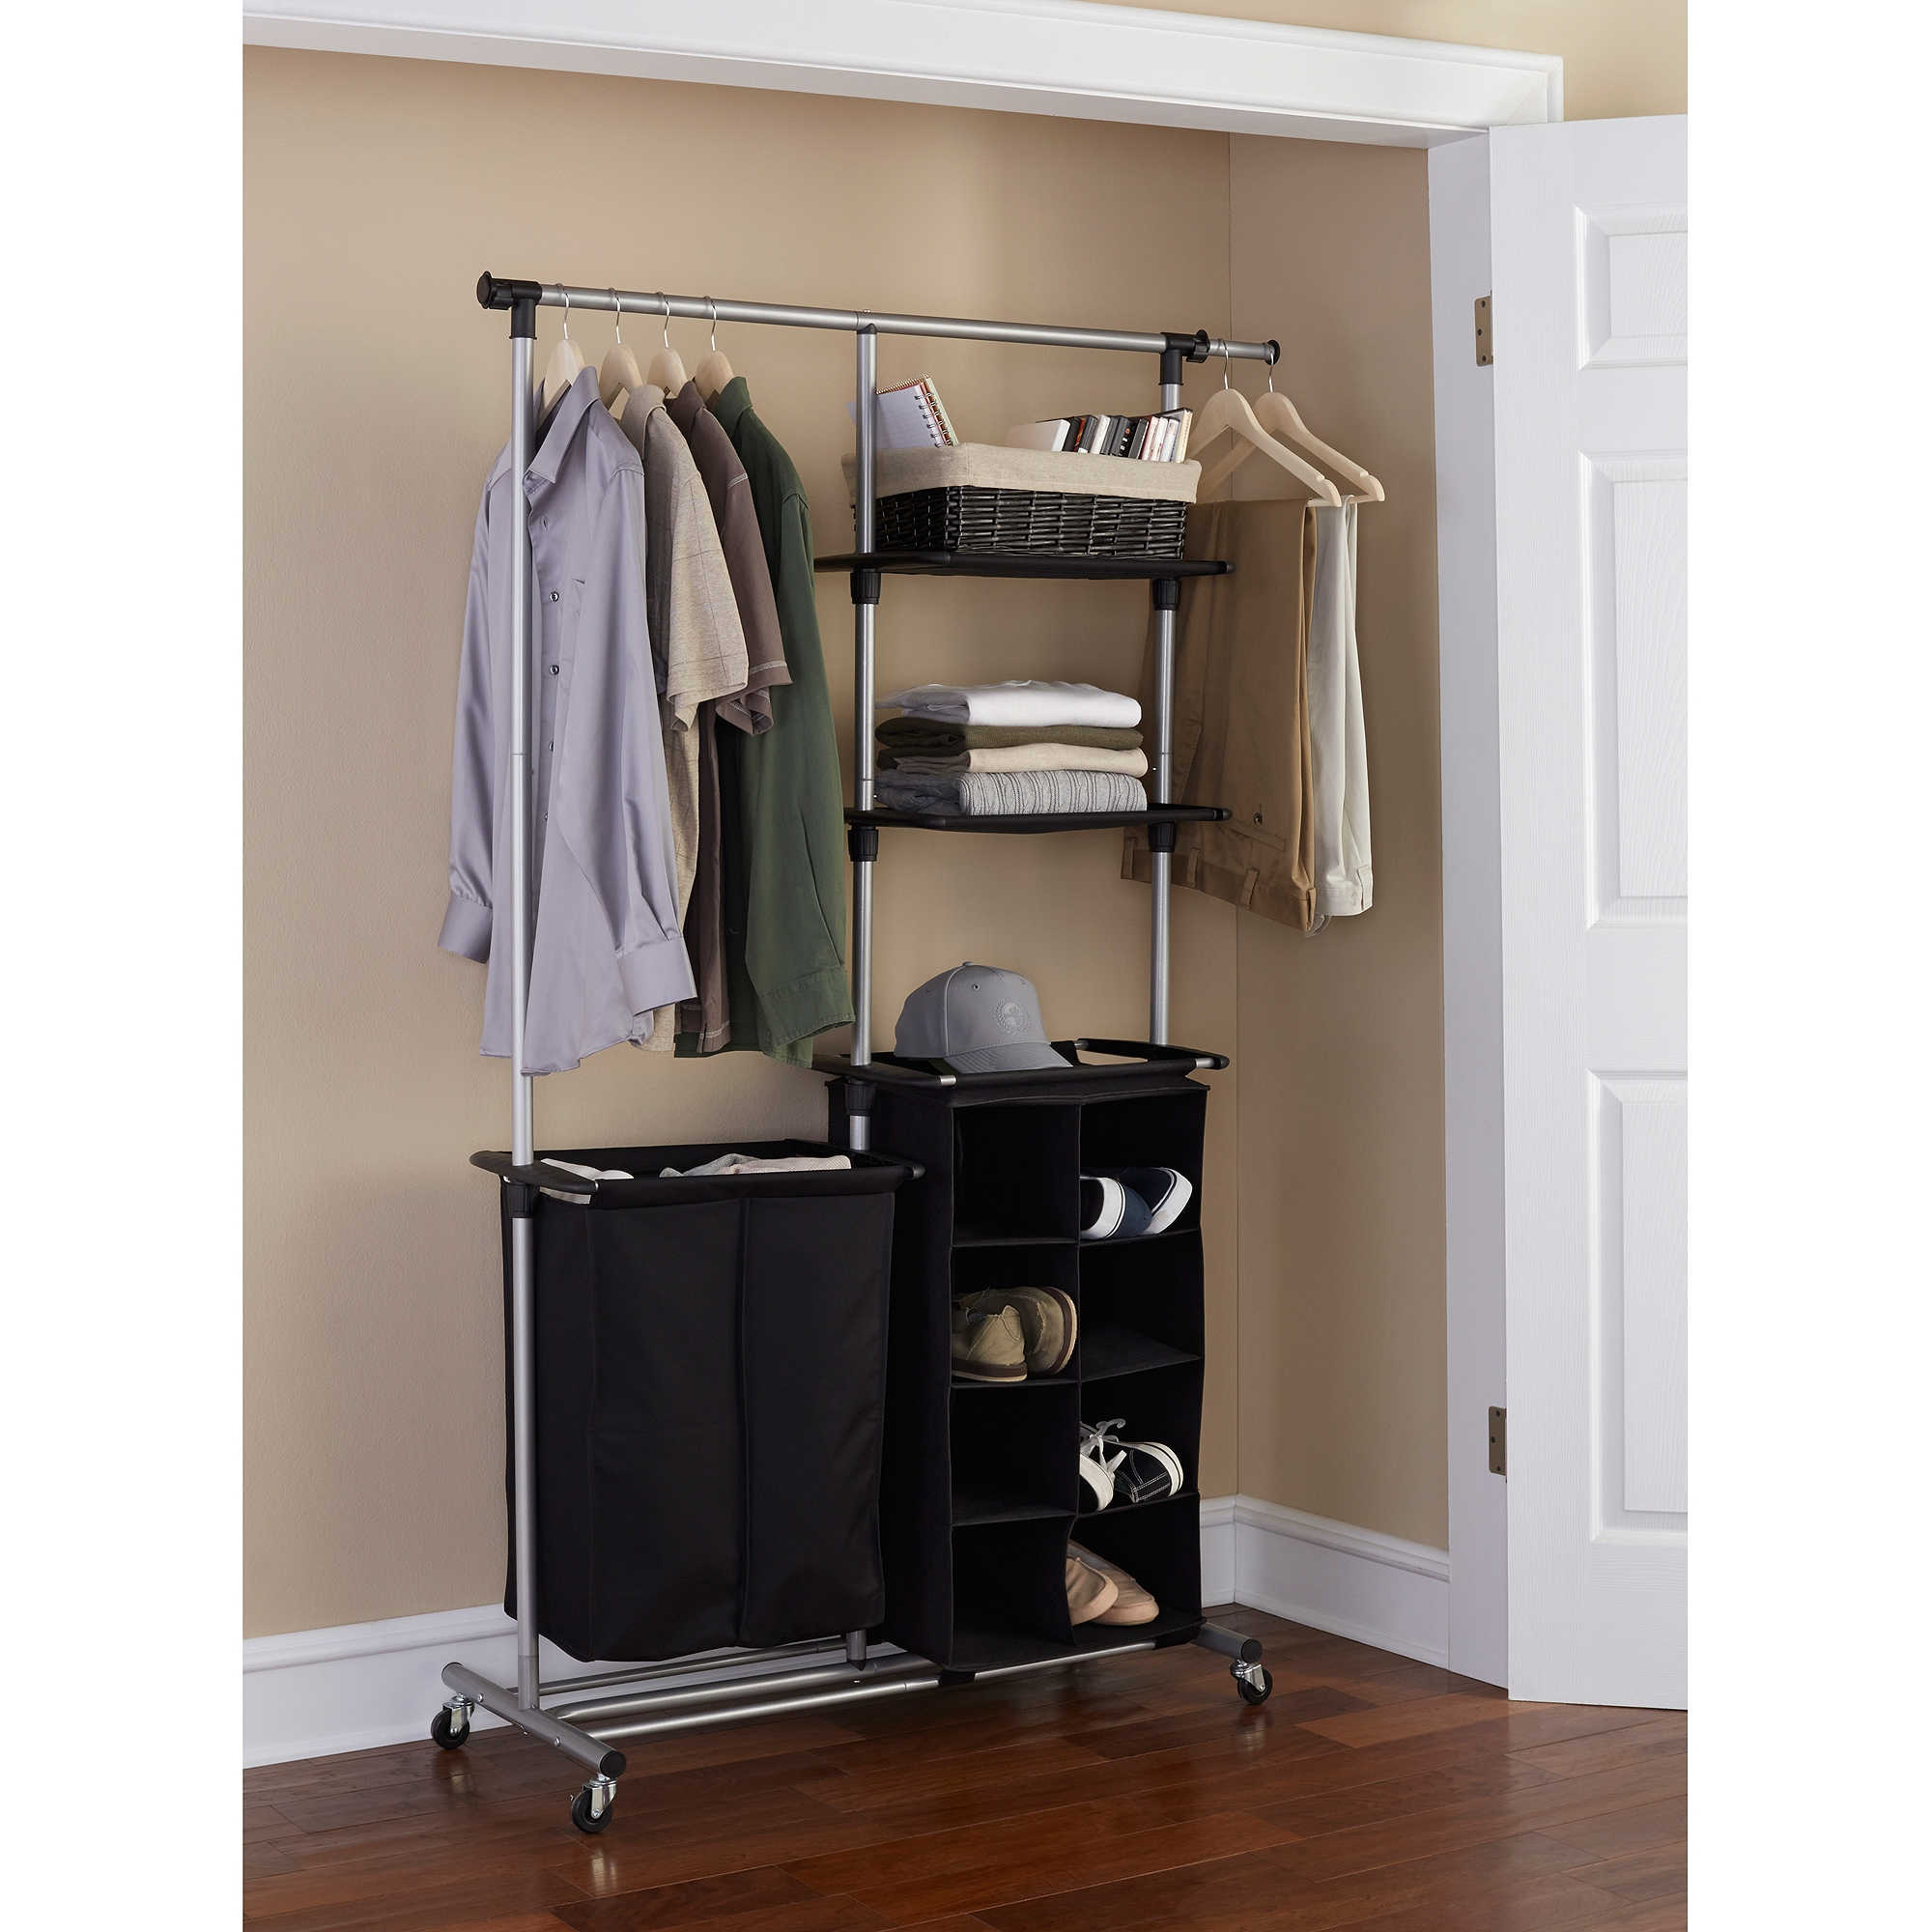 hall solutions atlanta full closet concept organization size wayne custom storage and of system fort pictures wardrobe cozy cozyset freestanding andage